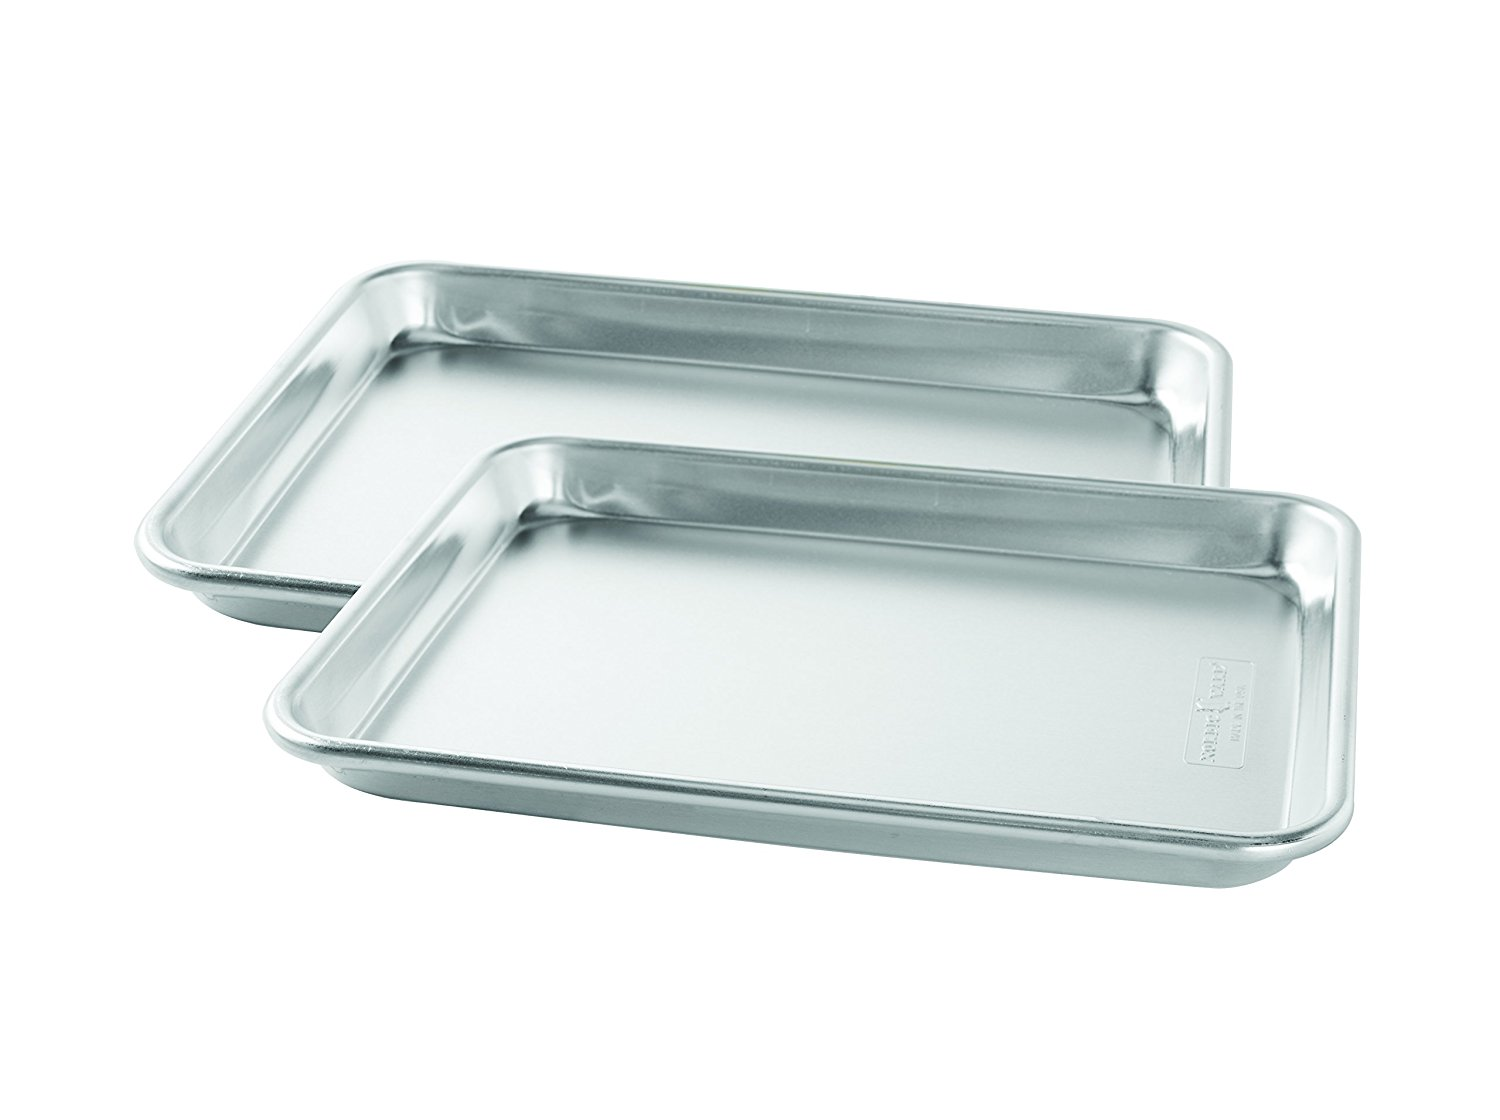 Quarter Baking Sheets